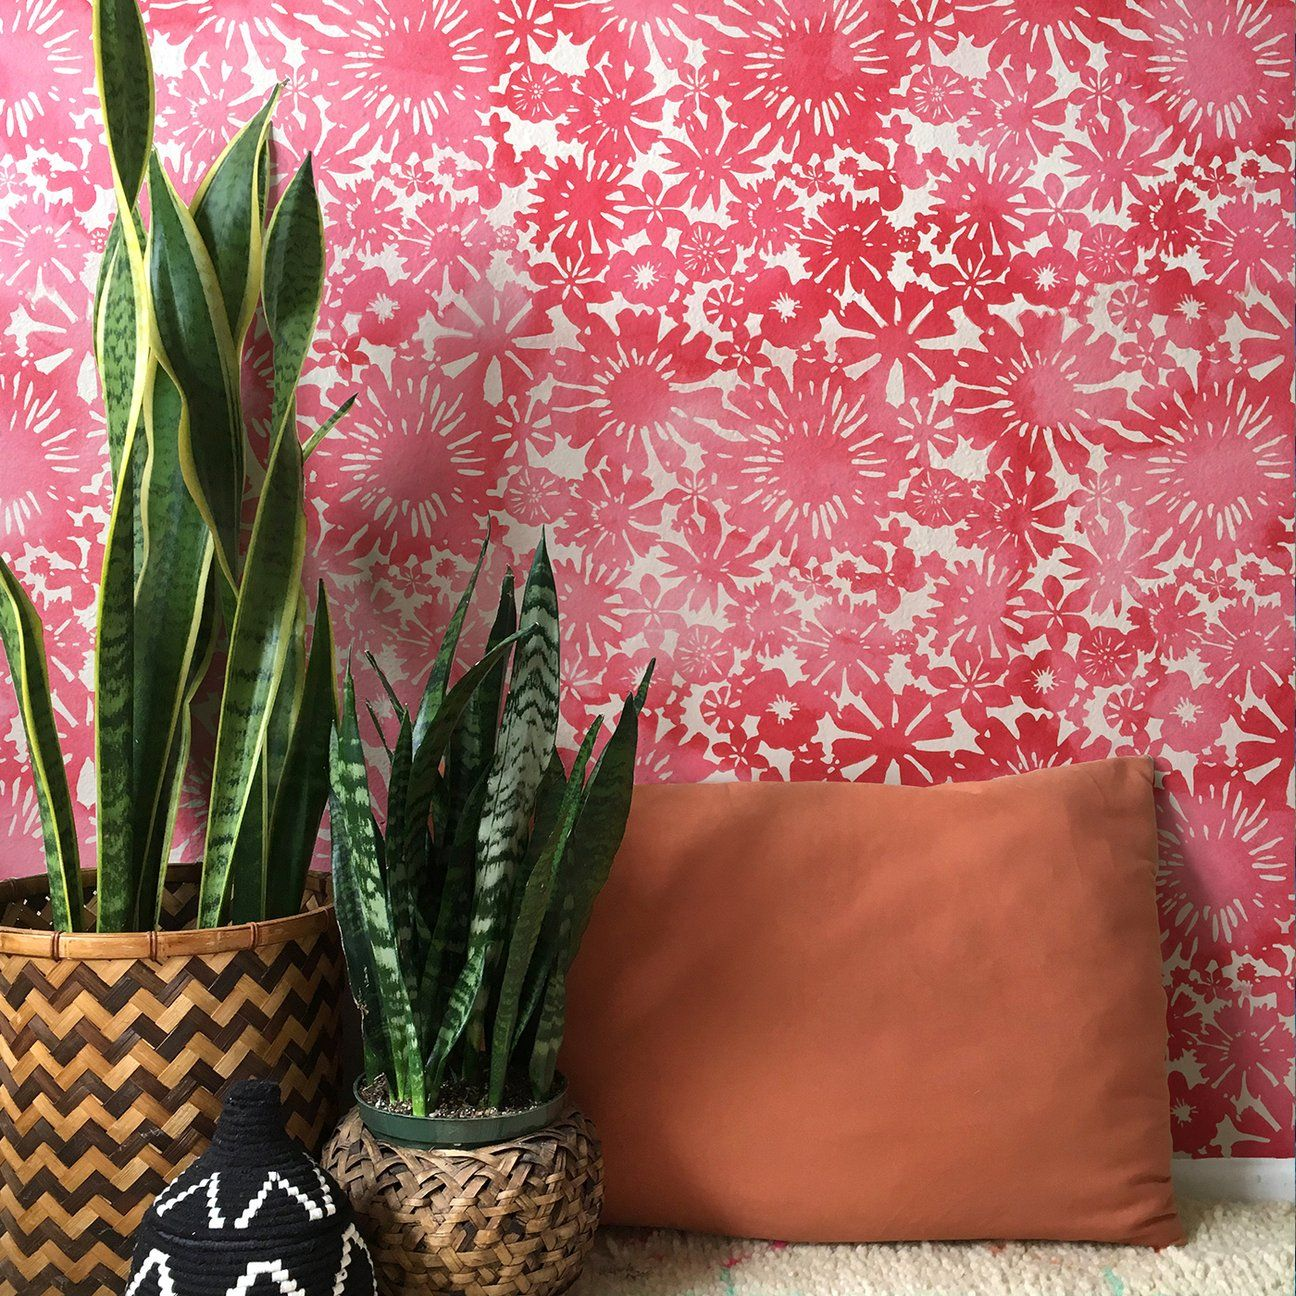 Stencil Designs And Pretty Pattern For A Colorful Room Makeover That S Cheaper Than Wallpaper Wall S In 2021 Stencils Wall Stencil Painting On Walls Diy Wall Painting